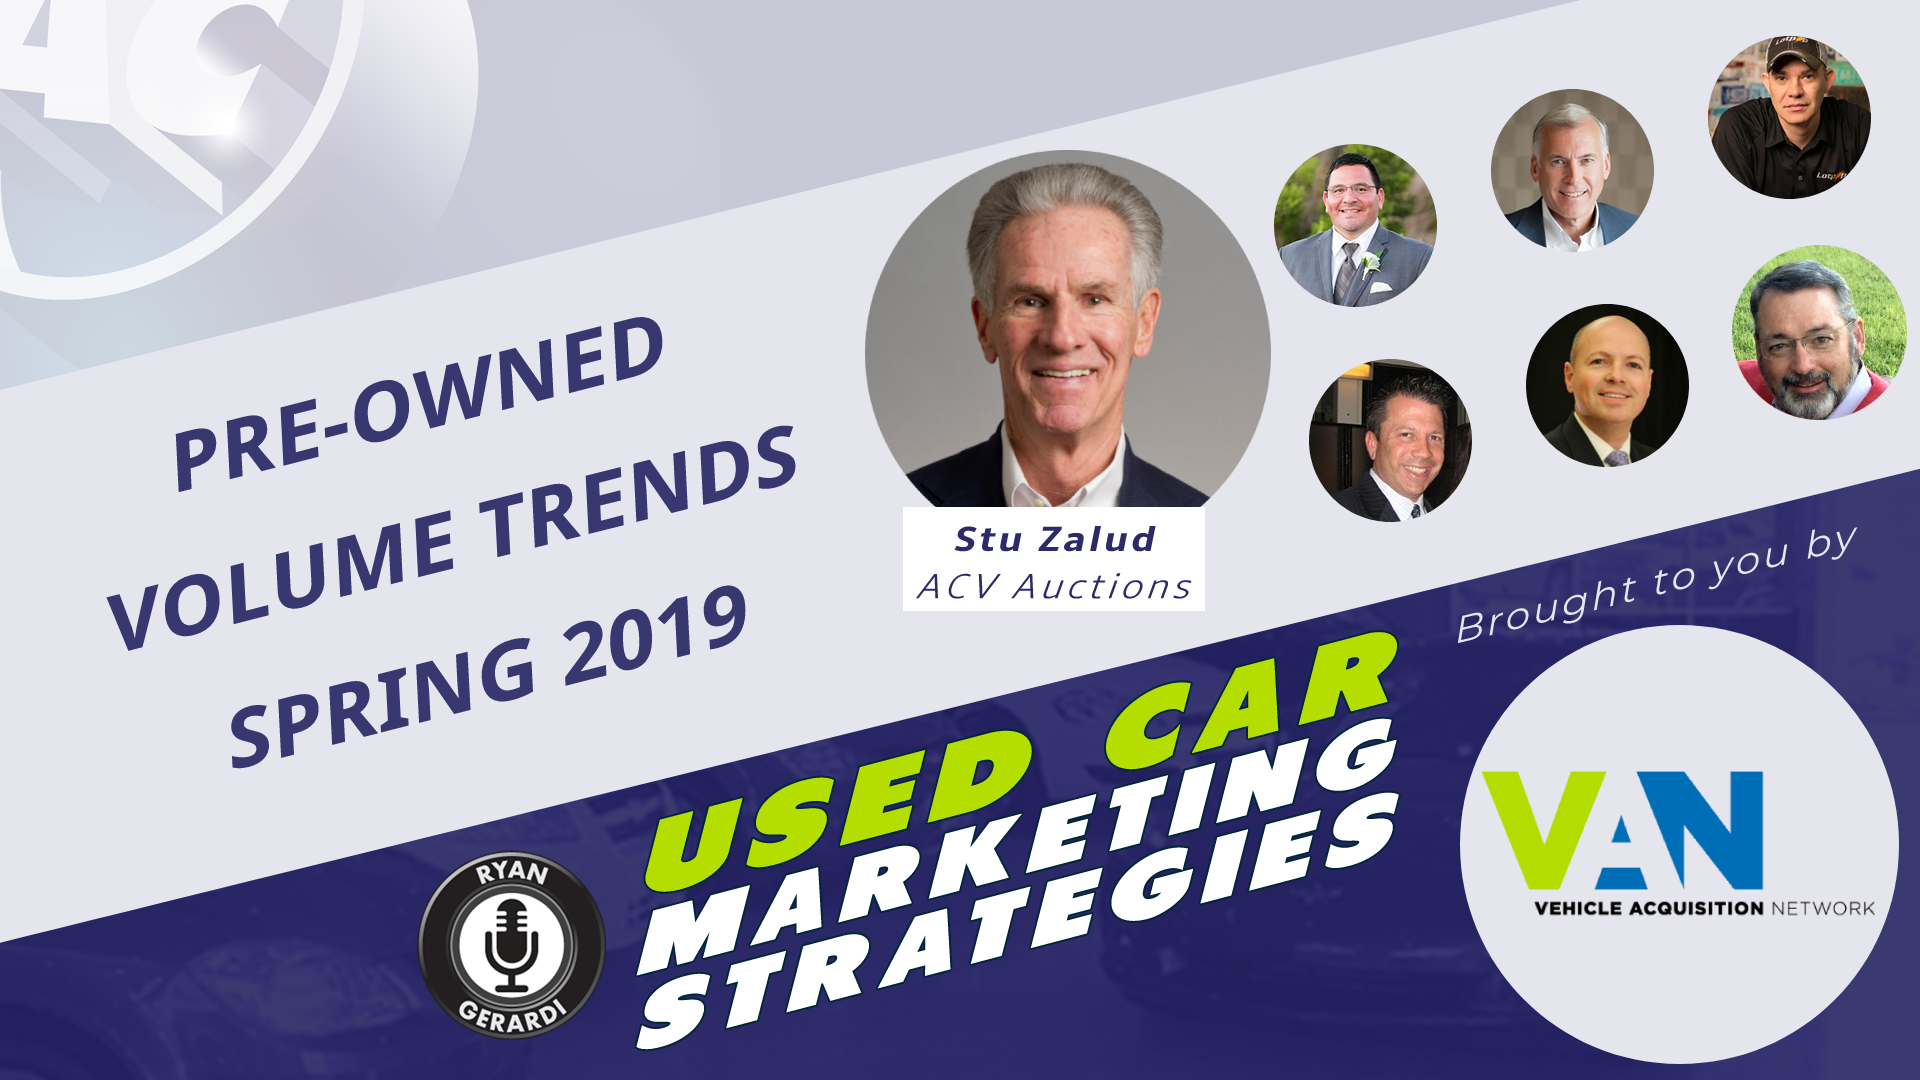 Pre-owned Vehicle Volume Trends for Spring 2019 – Live Web Chat